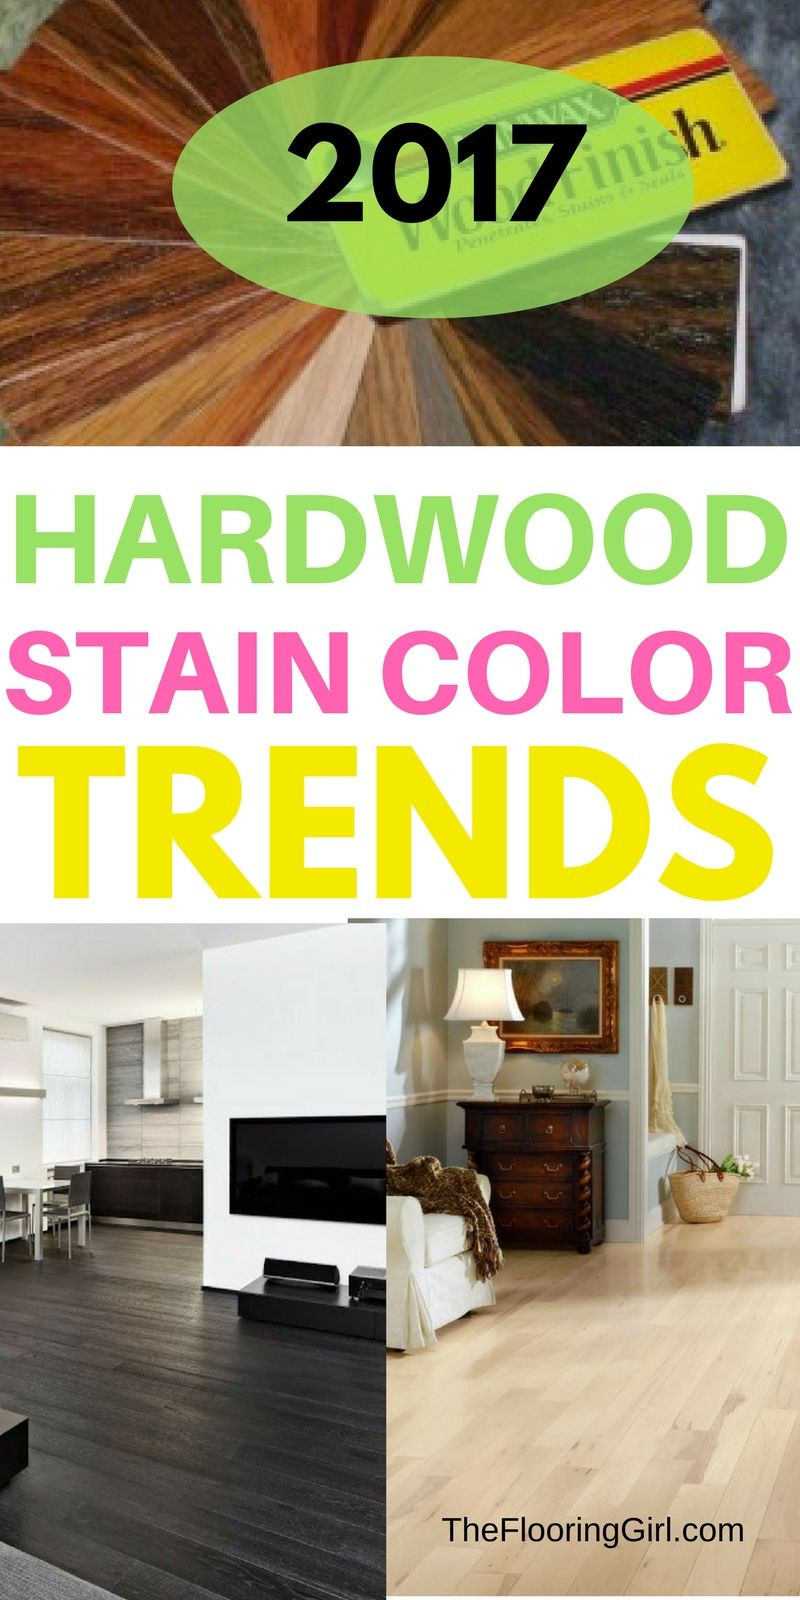 how to refinish hardwood floors with polyurethane of hardwood flooring stain color trends 2018 more from the flooring for hardwood flooring stain color trends for 2017 hardwood colors that are in style theflooringgirl com